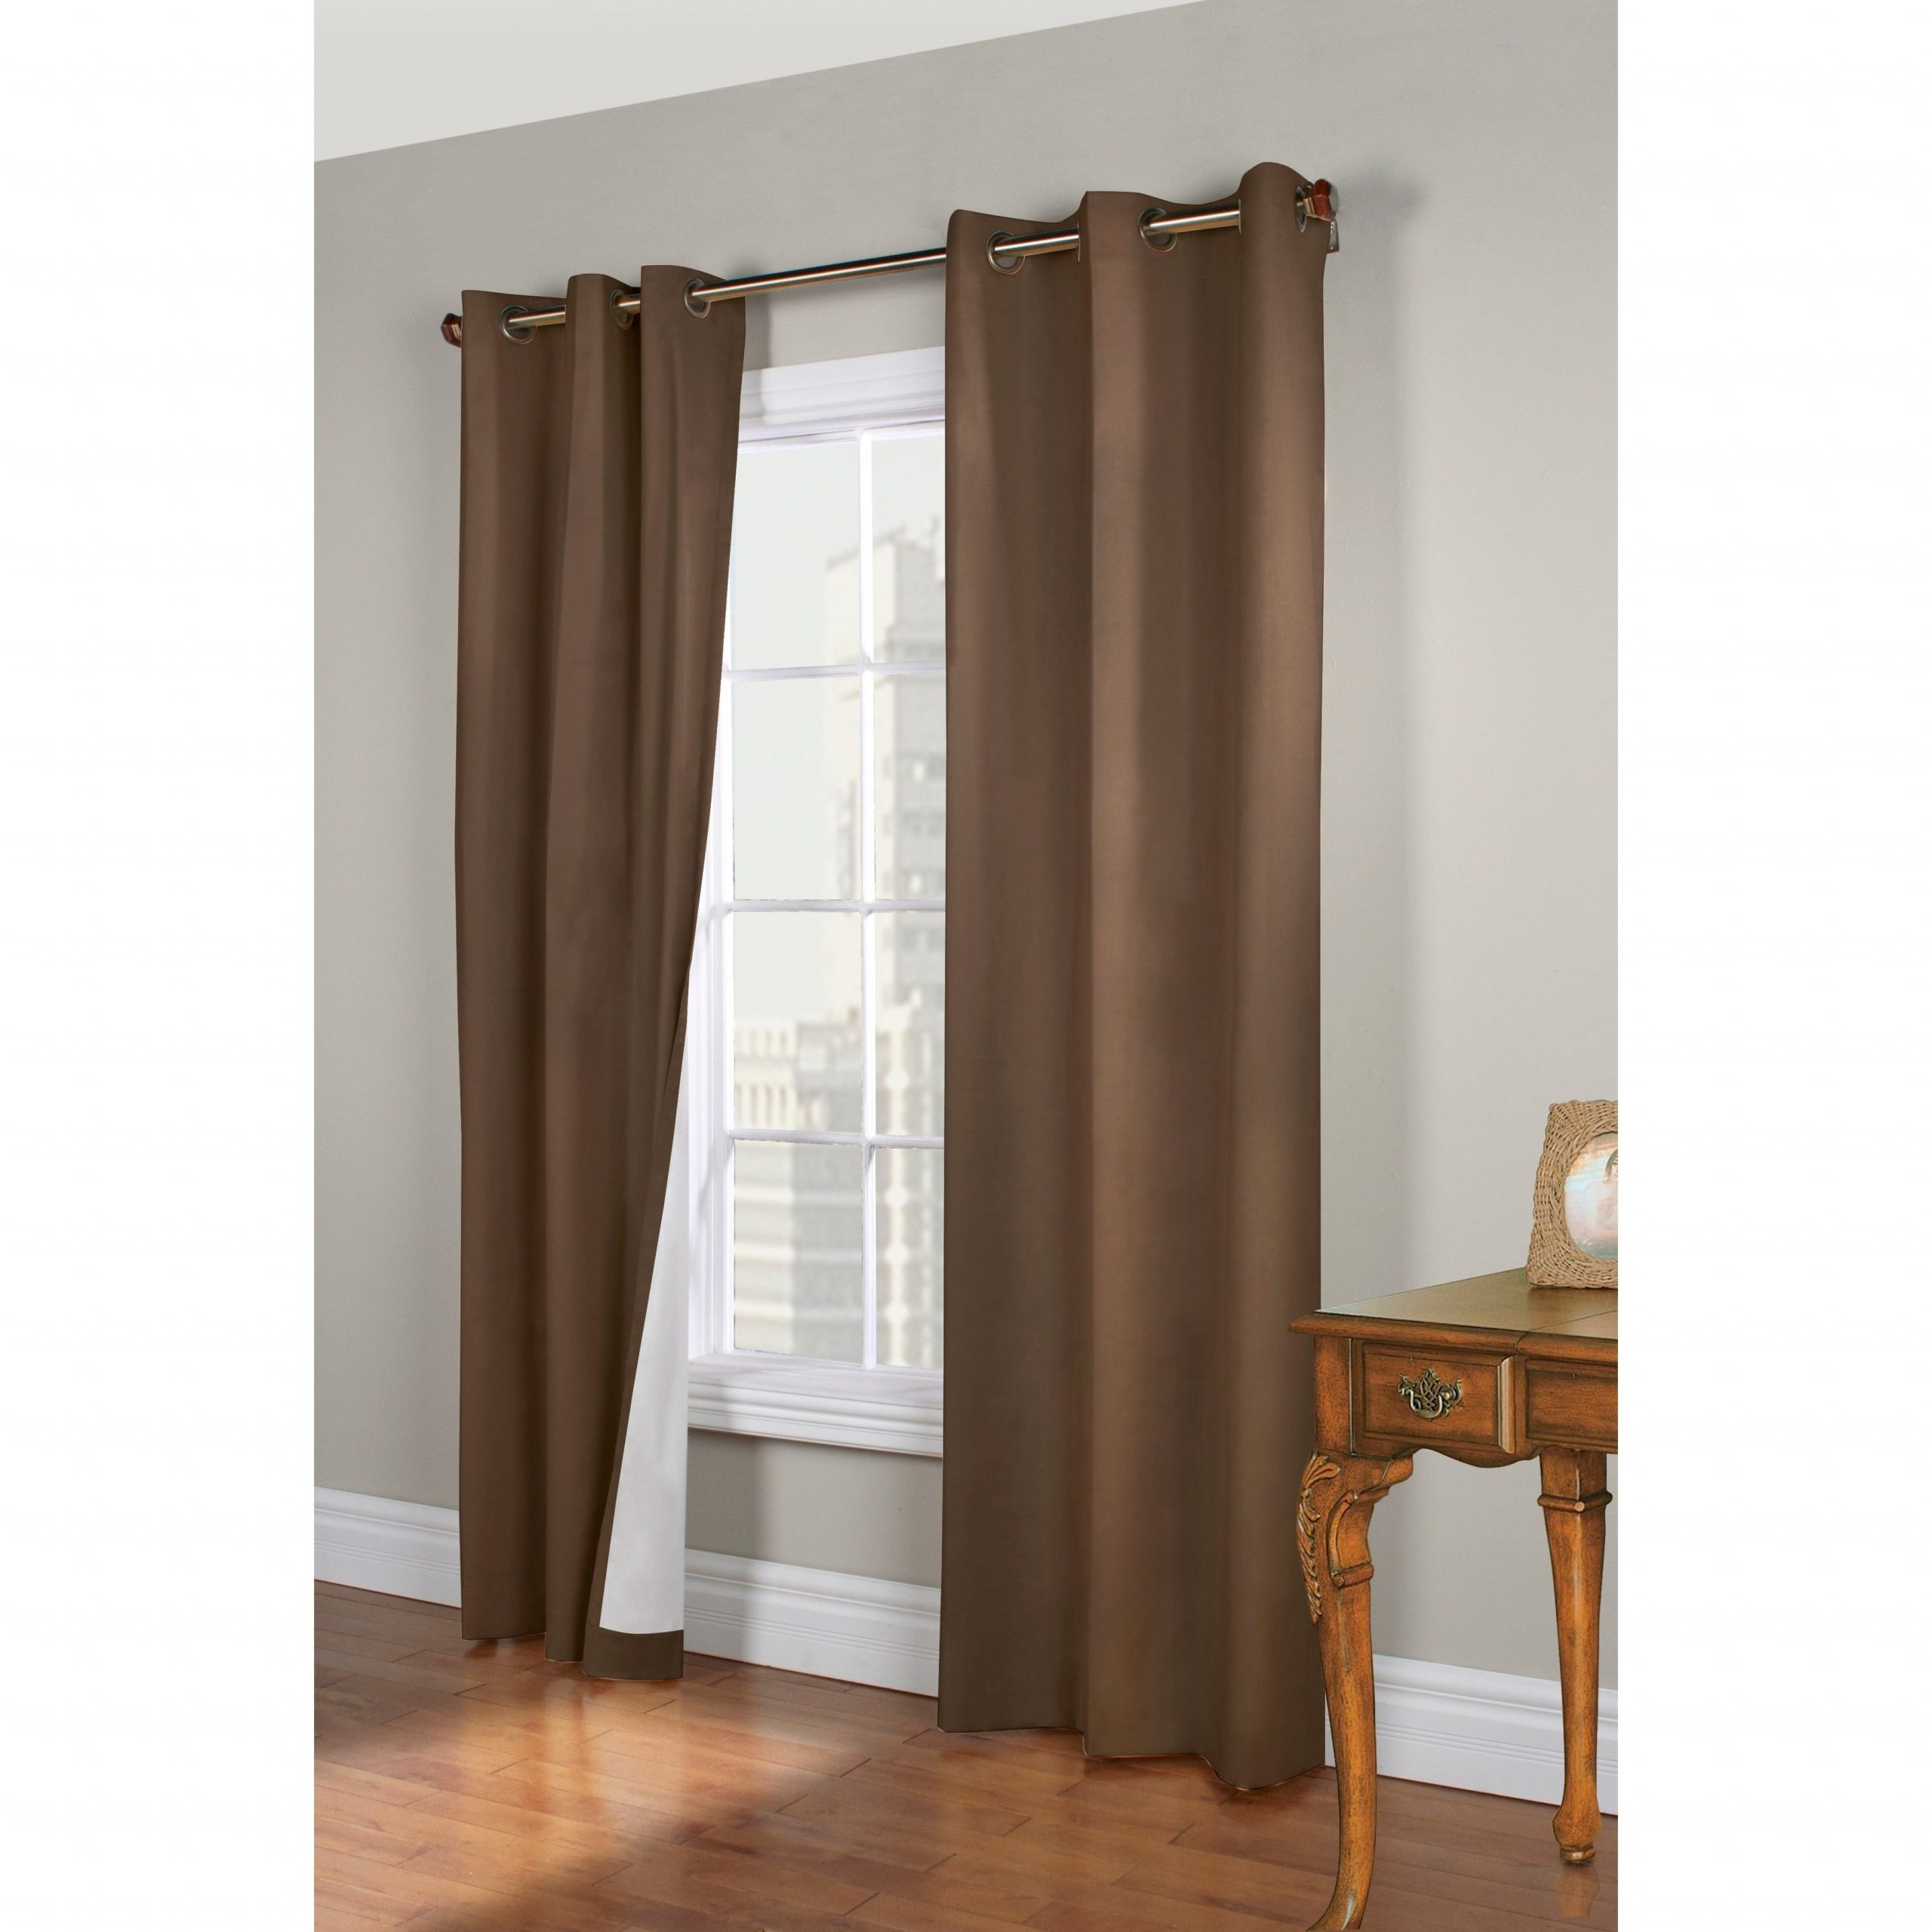 Insulated Cotton Curtain Panel Pairs With Most Up To Date Thermalogic Weathermate Insulated Grommet Curtain Panel Pair (View 7 of 20)